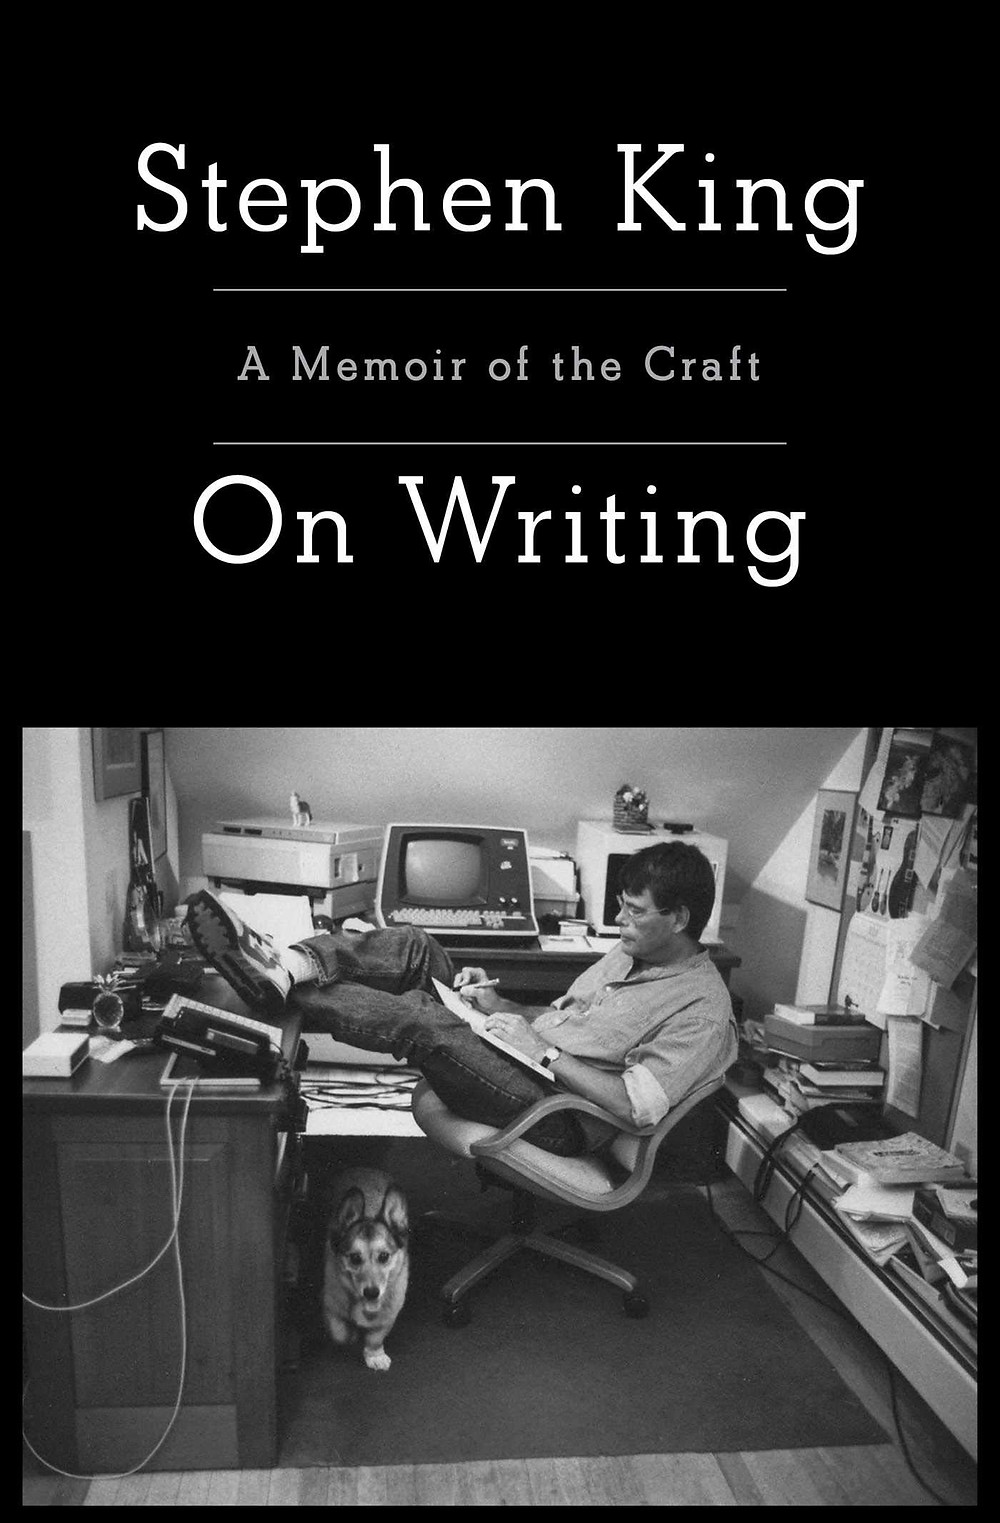 On Writing, by Stephen King